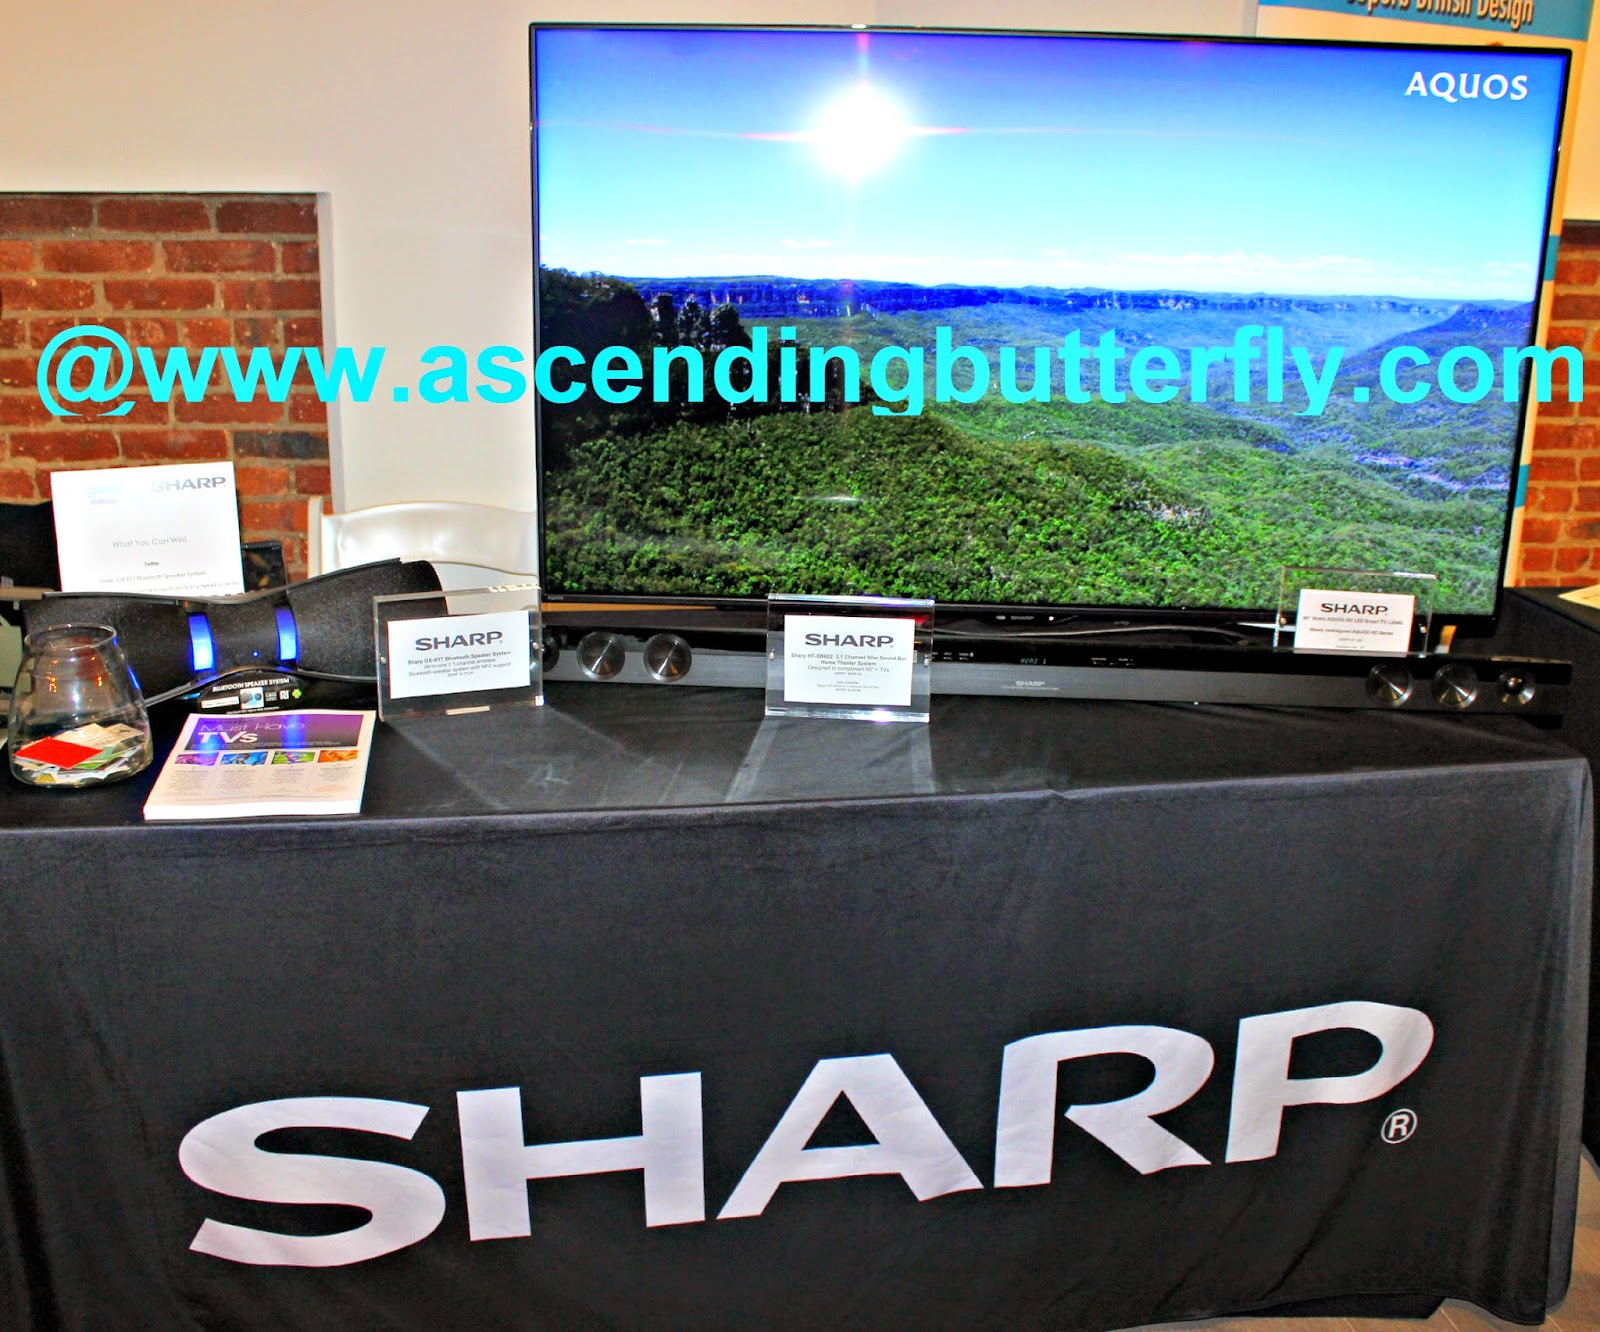 Sharp Aquos Television at GetGeeked NYC